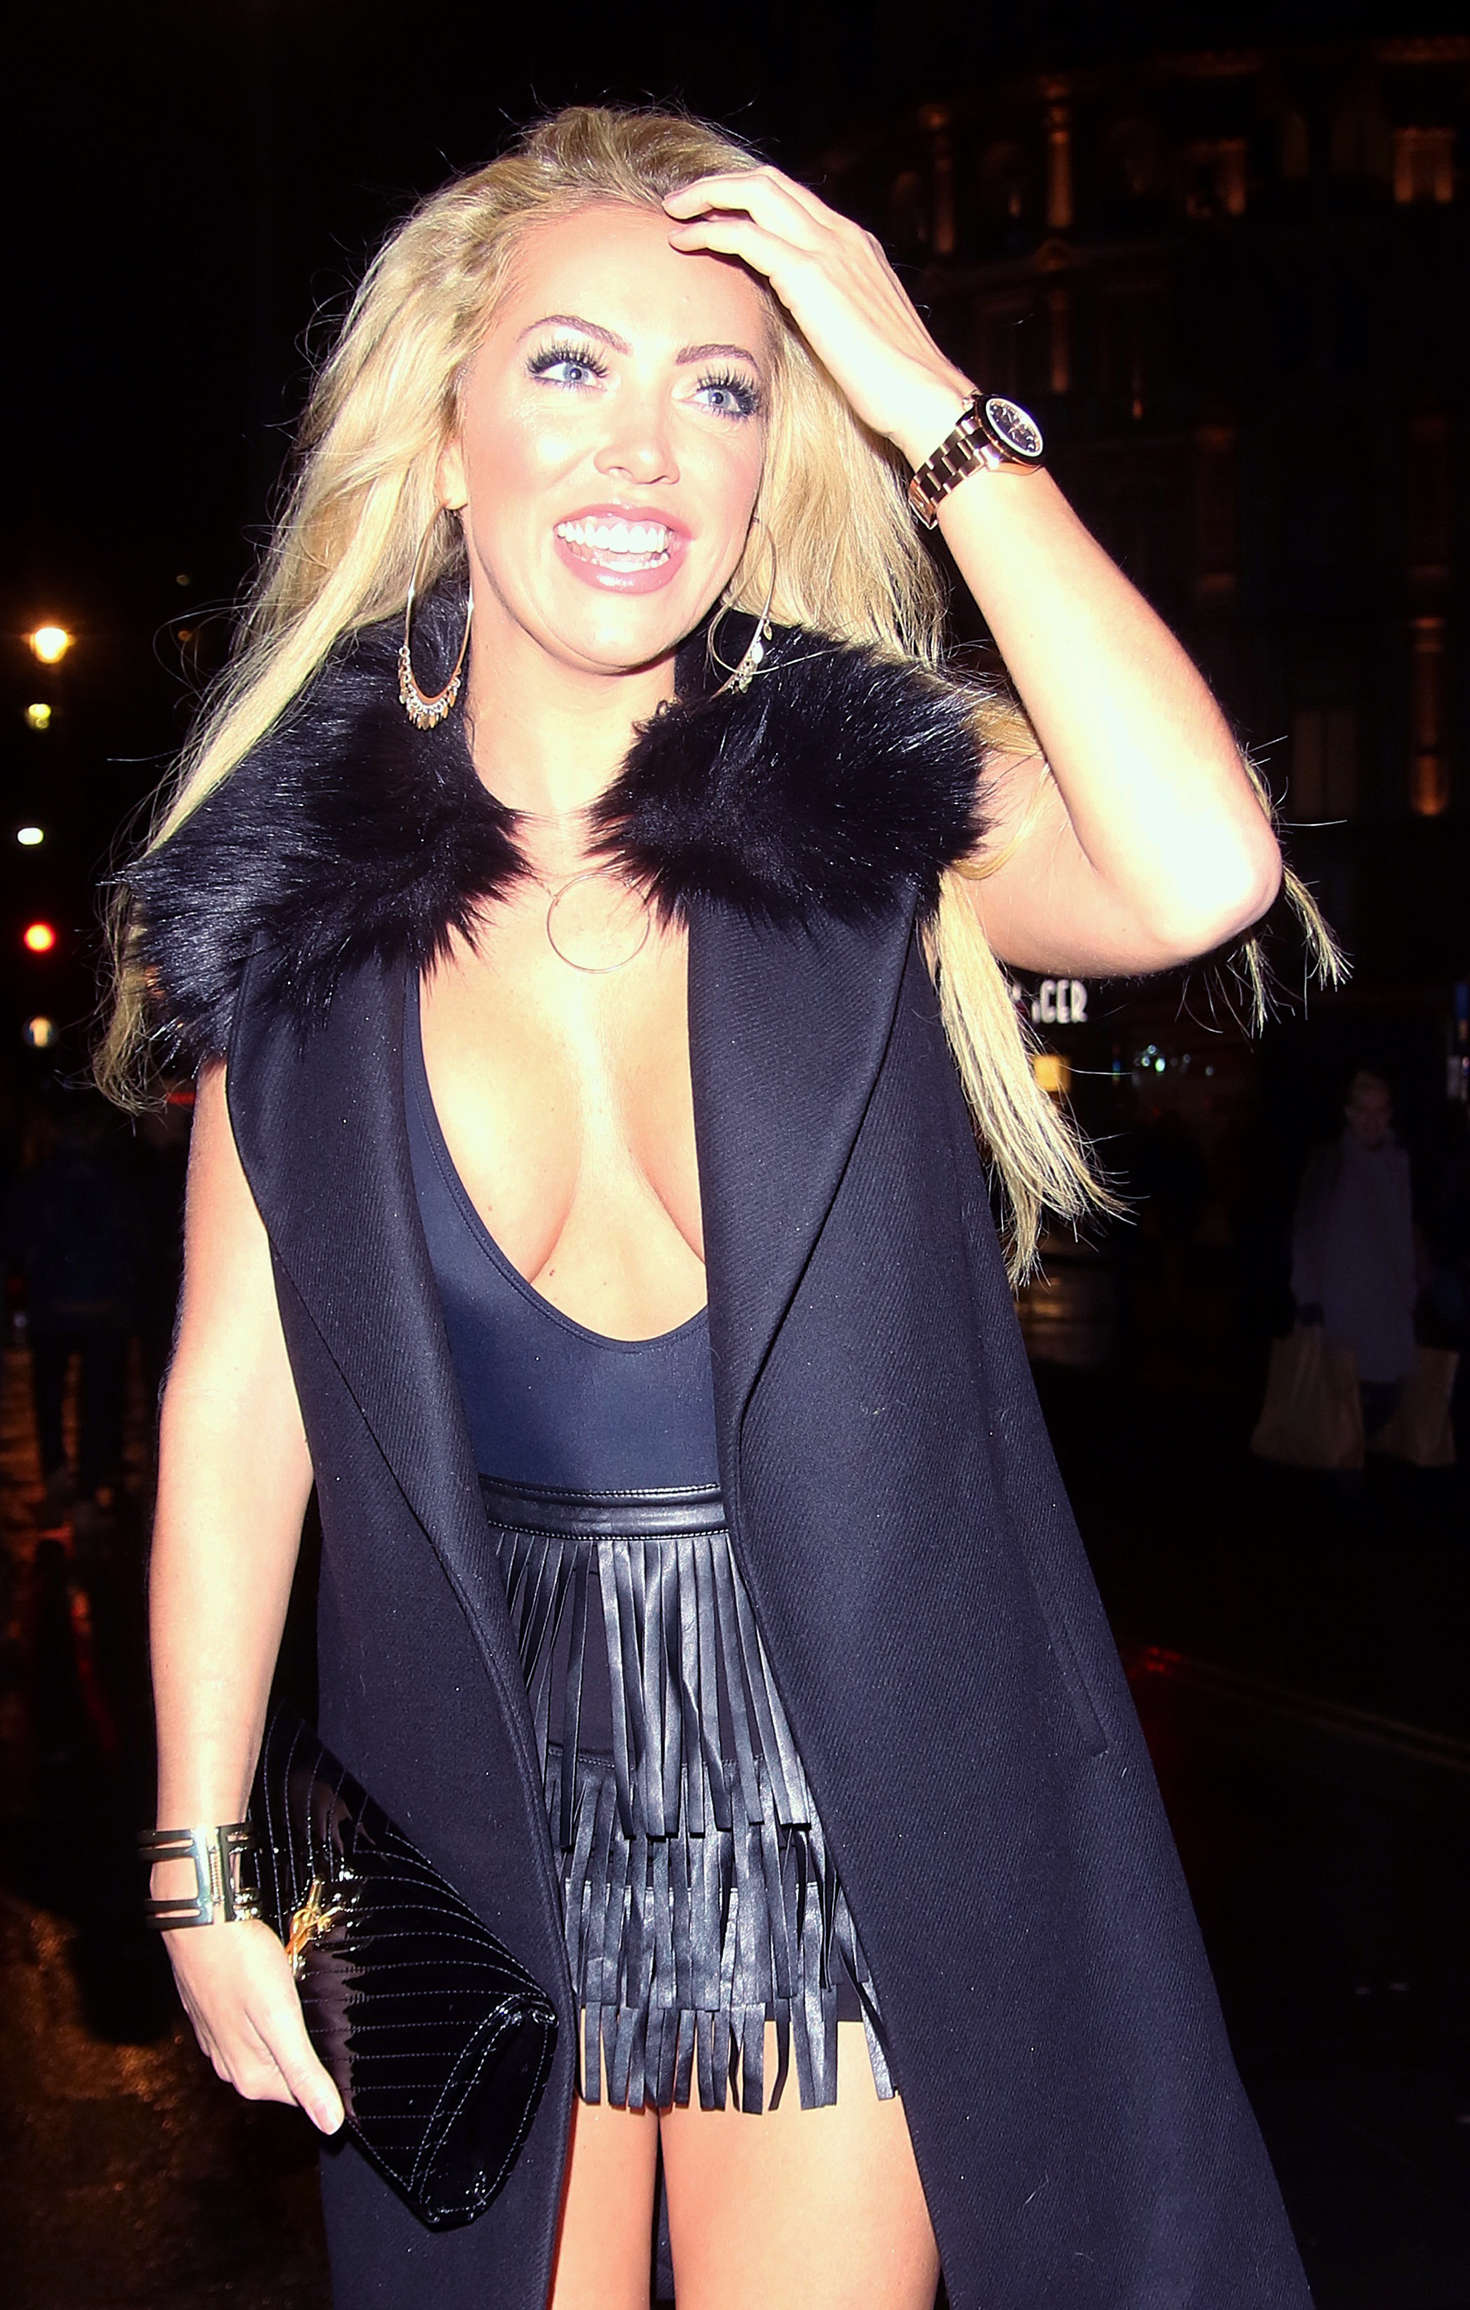 Aisleyne Horgan Wallace night out at the W Hotel in London